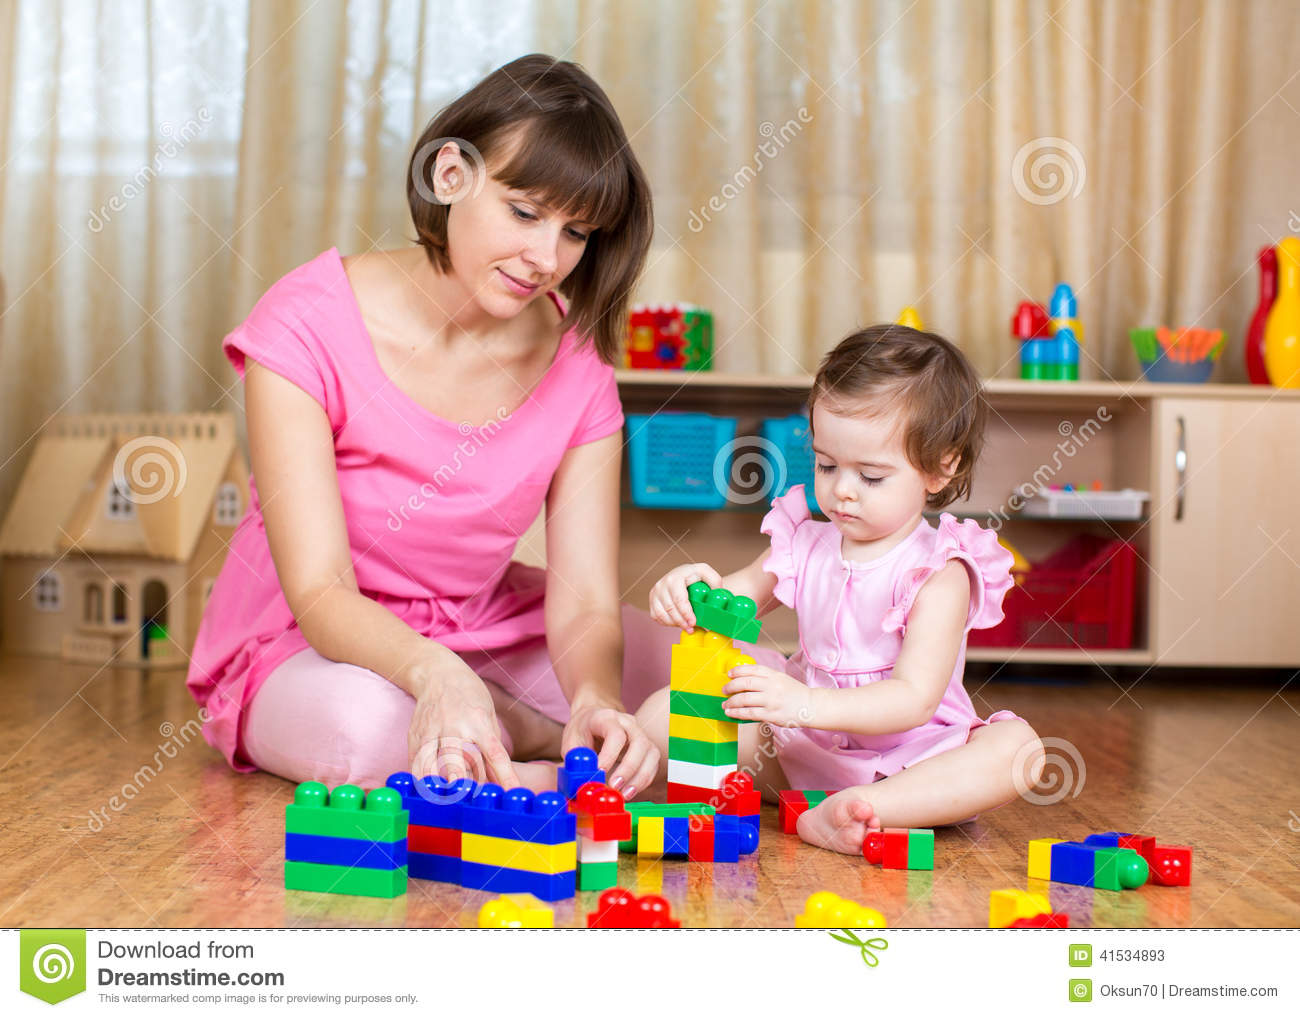 Toys For Developmental Stages : Mom and kid girl play block toys at home stock image